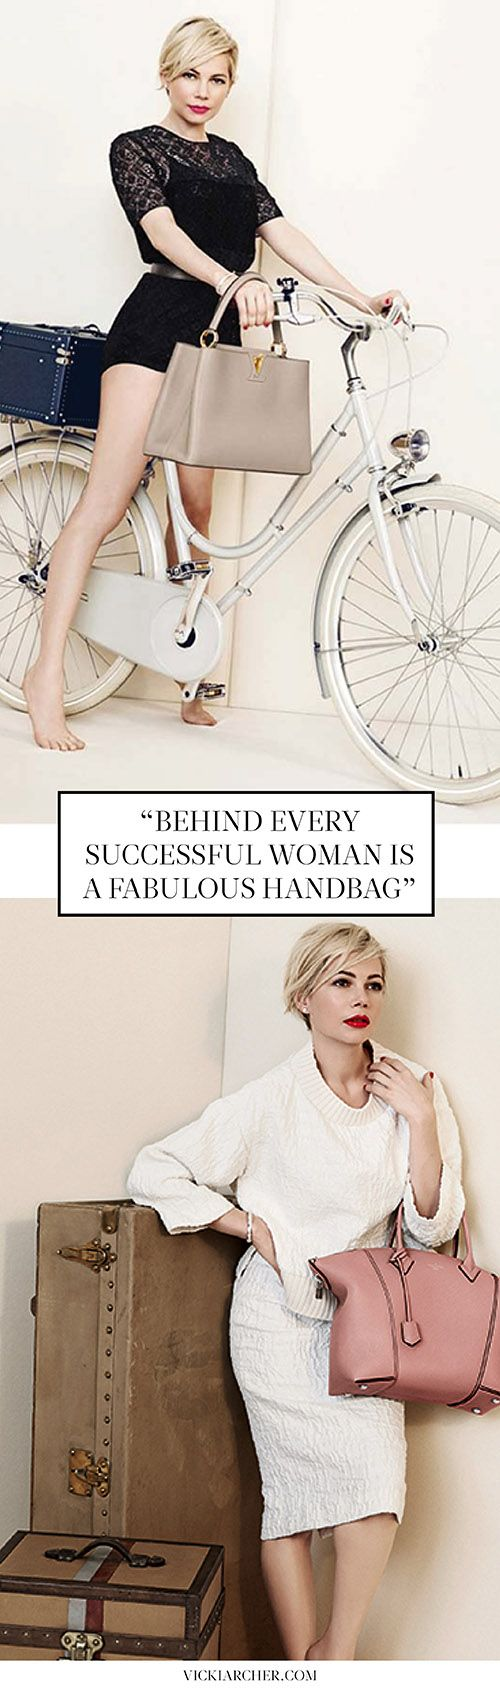 packing for paris: the two handbag rule http://vickiarcher.com/2015/07/packing-for-paris-the-two-handbag-rule/